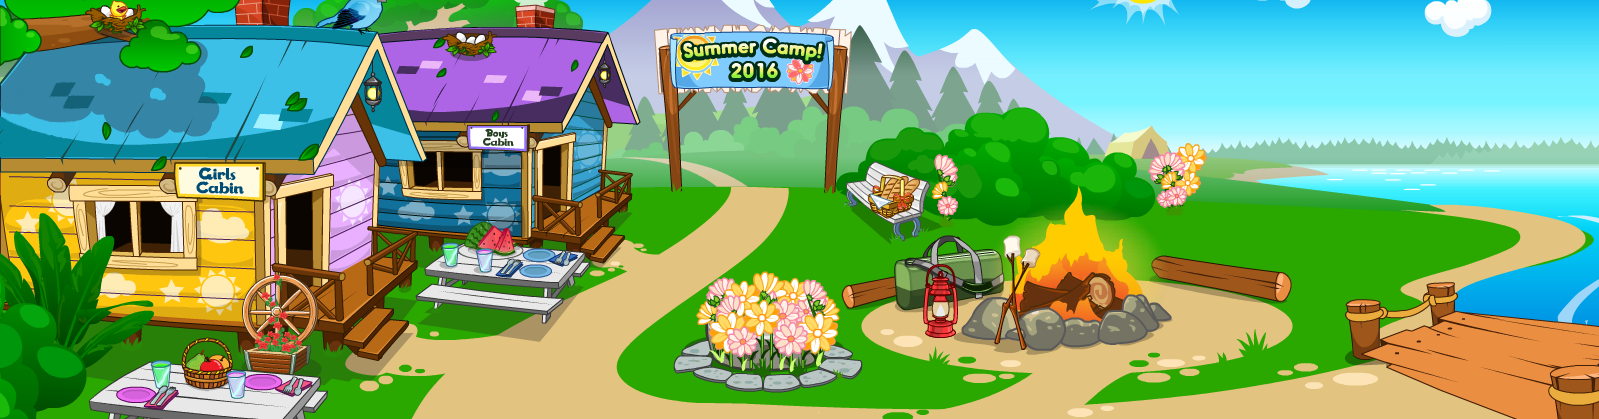 (F2U) Fantage Summer Camp 2016 Background by Fario-P